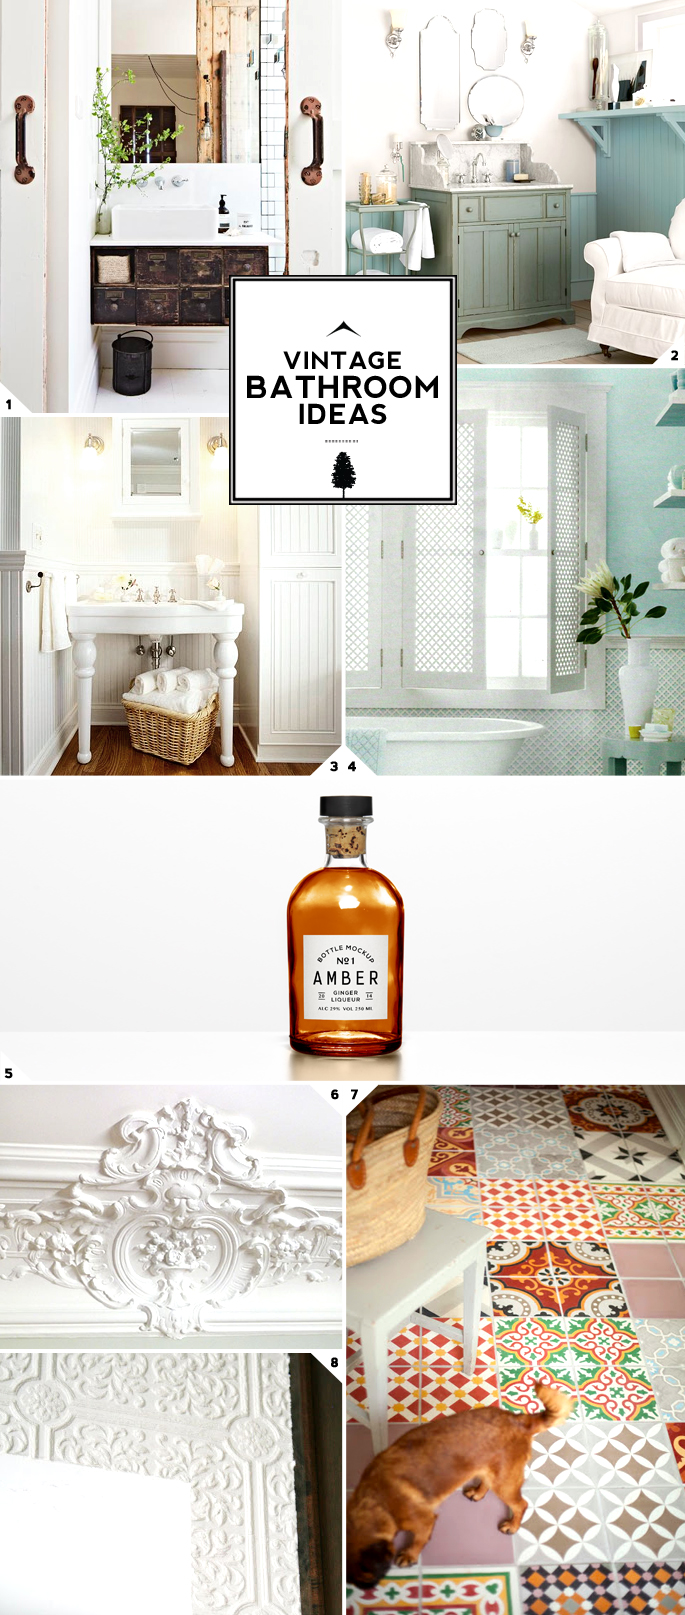 Vintage bathroom decor ideas home tree atlas for Bathroom decor ideas images